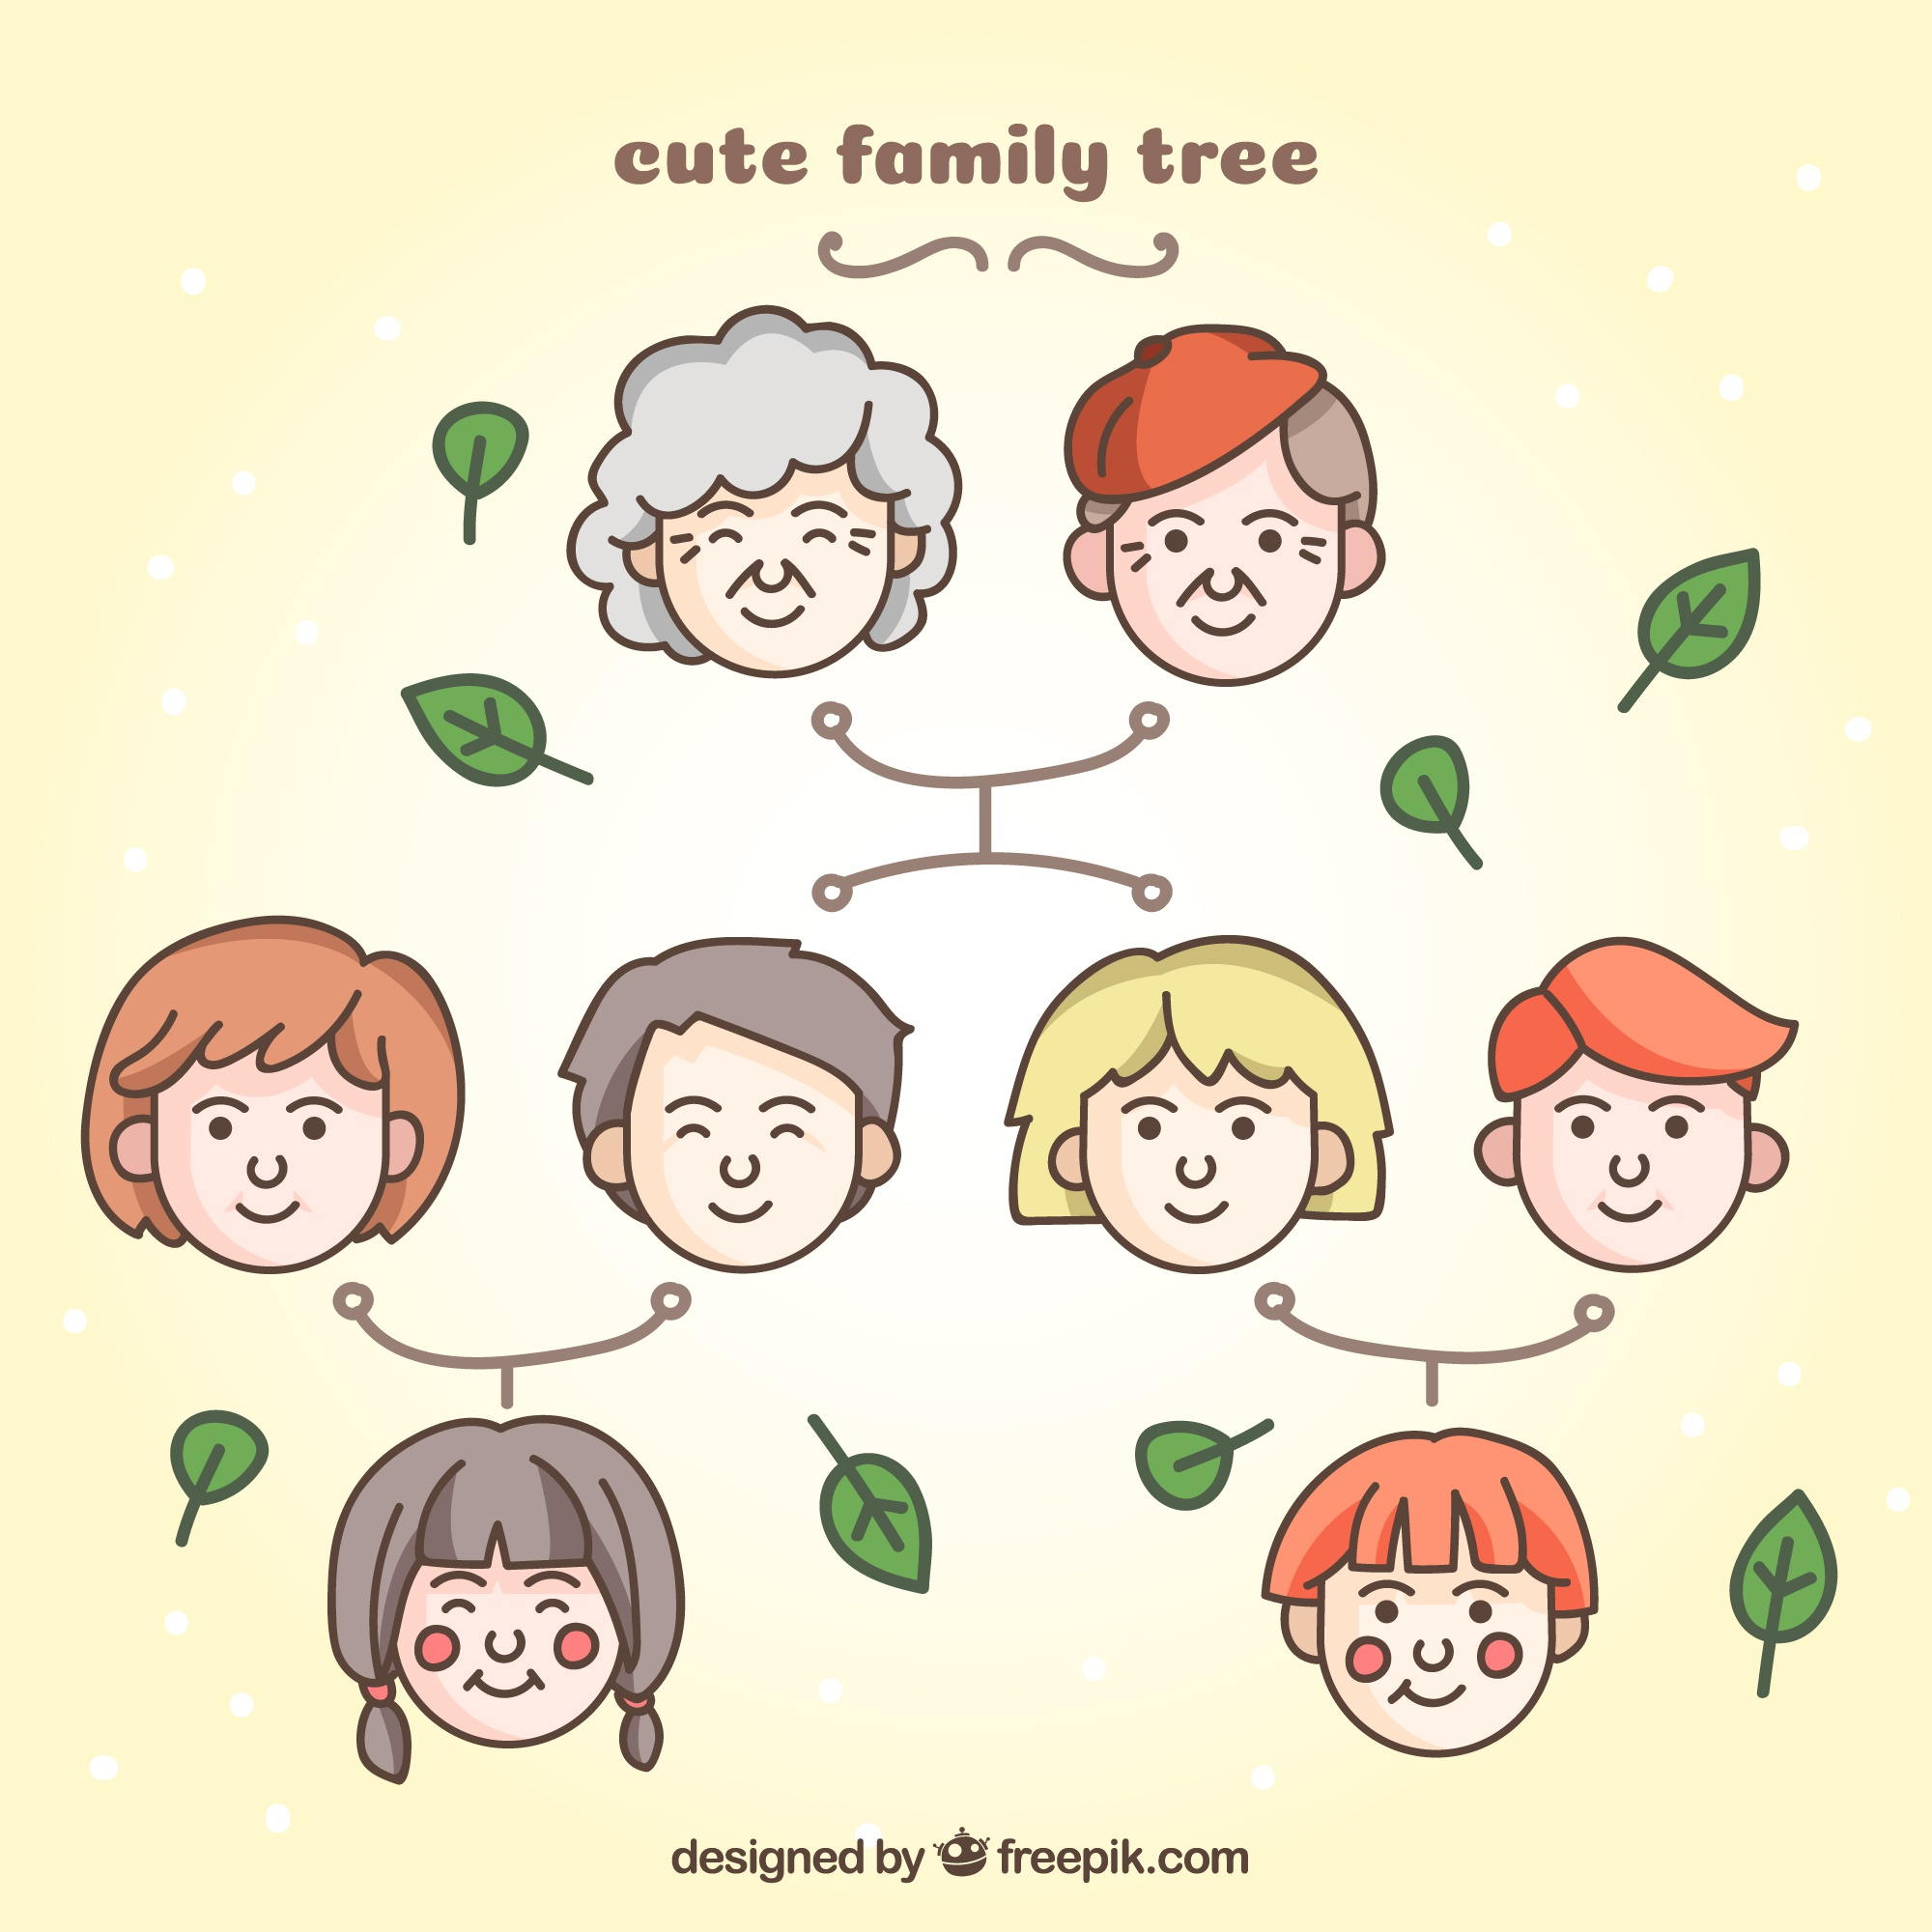 Cute family tree with decorative leaves